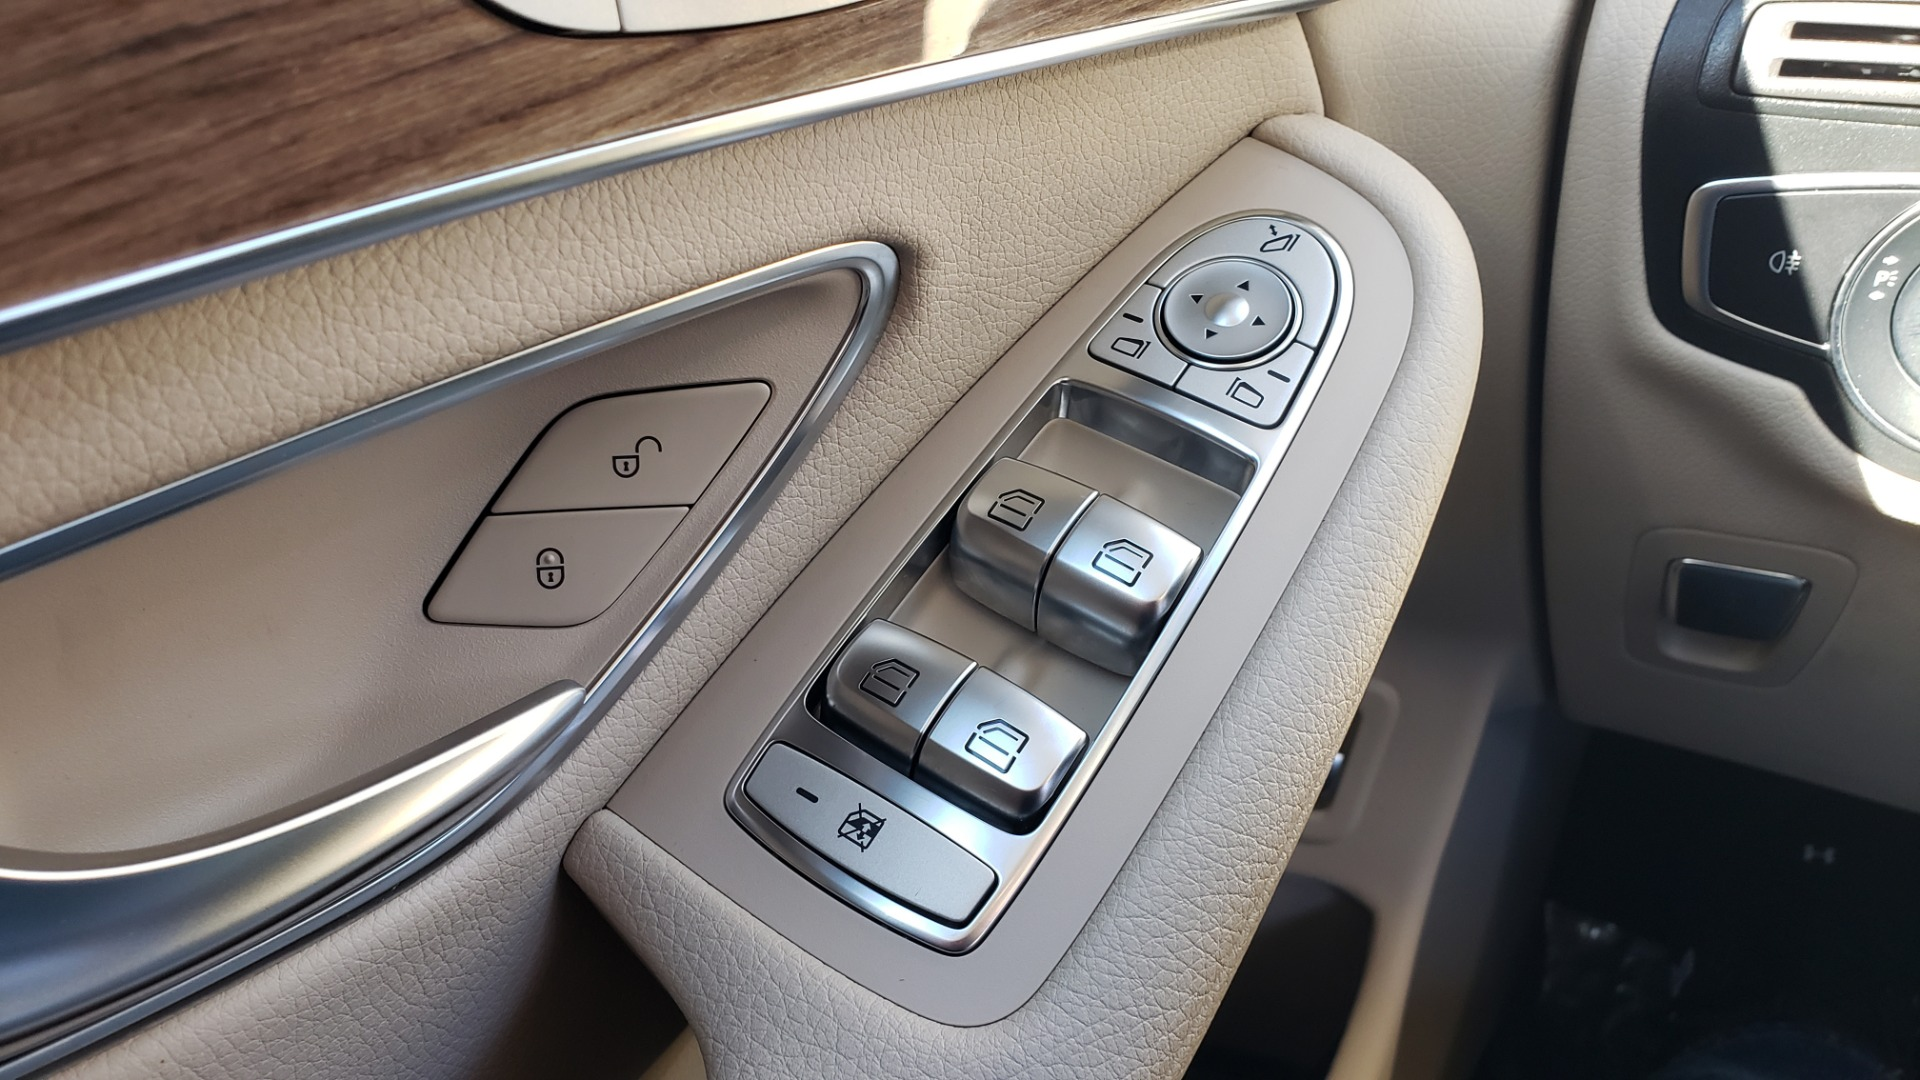 Used 2018 Mercedes-Benz GLC 300 4MATIC / PREM PKG / NAV / SUNROOF / REARVIEW for sale $36,995 at Formula Imports in Charlotte NC 28227 38